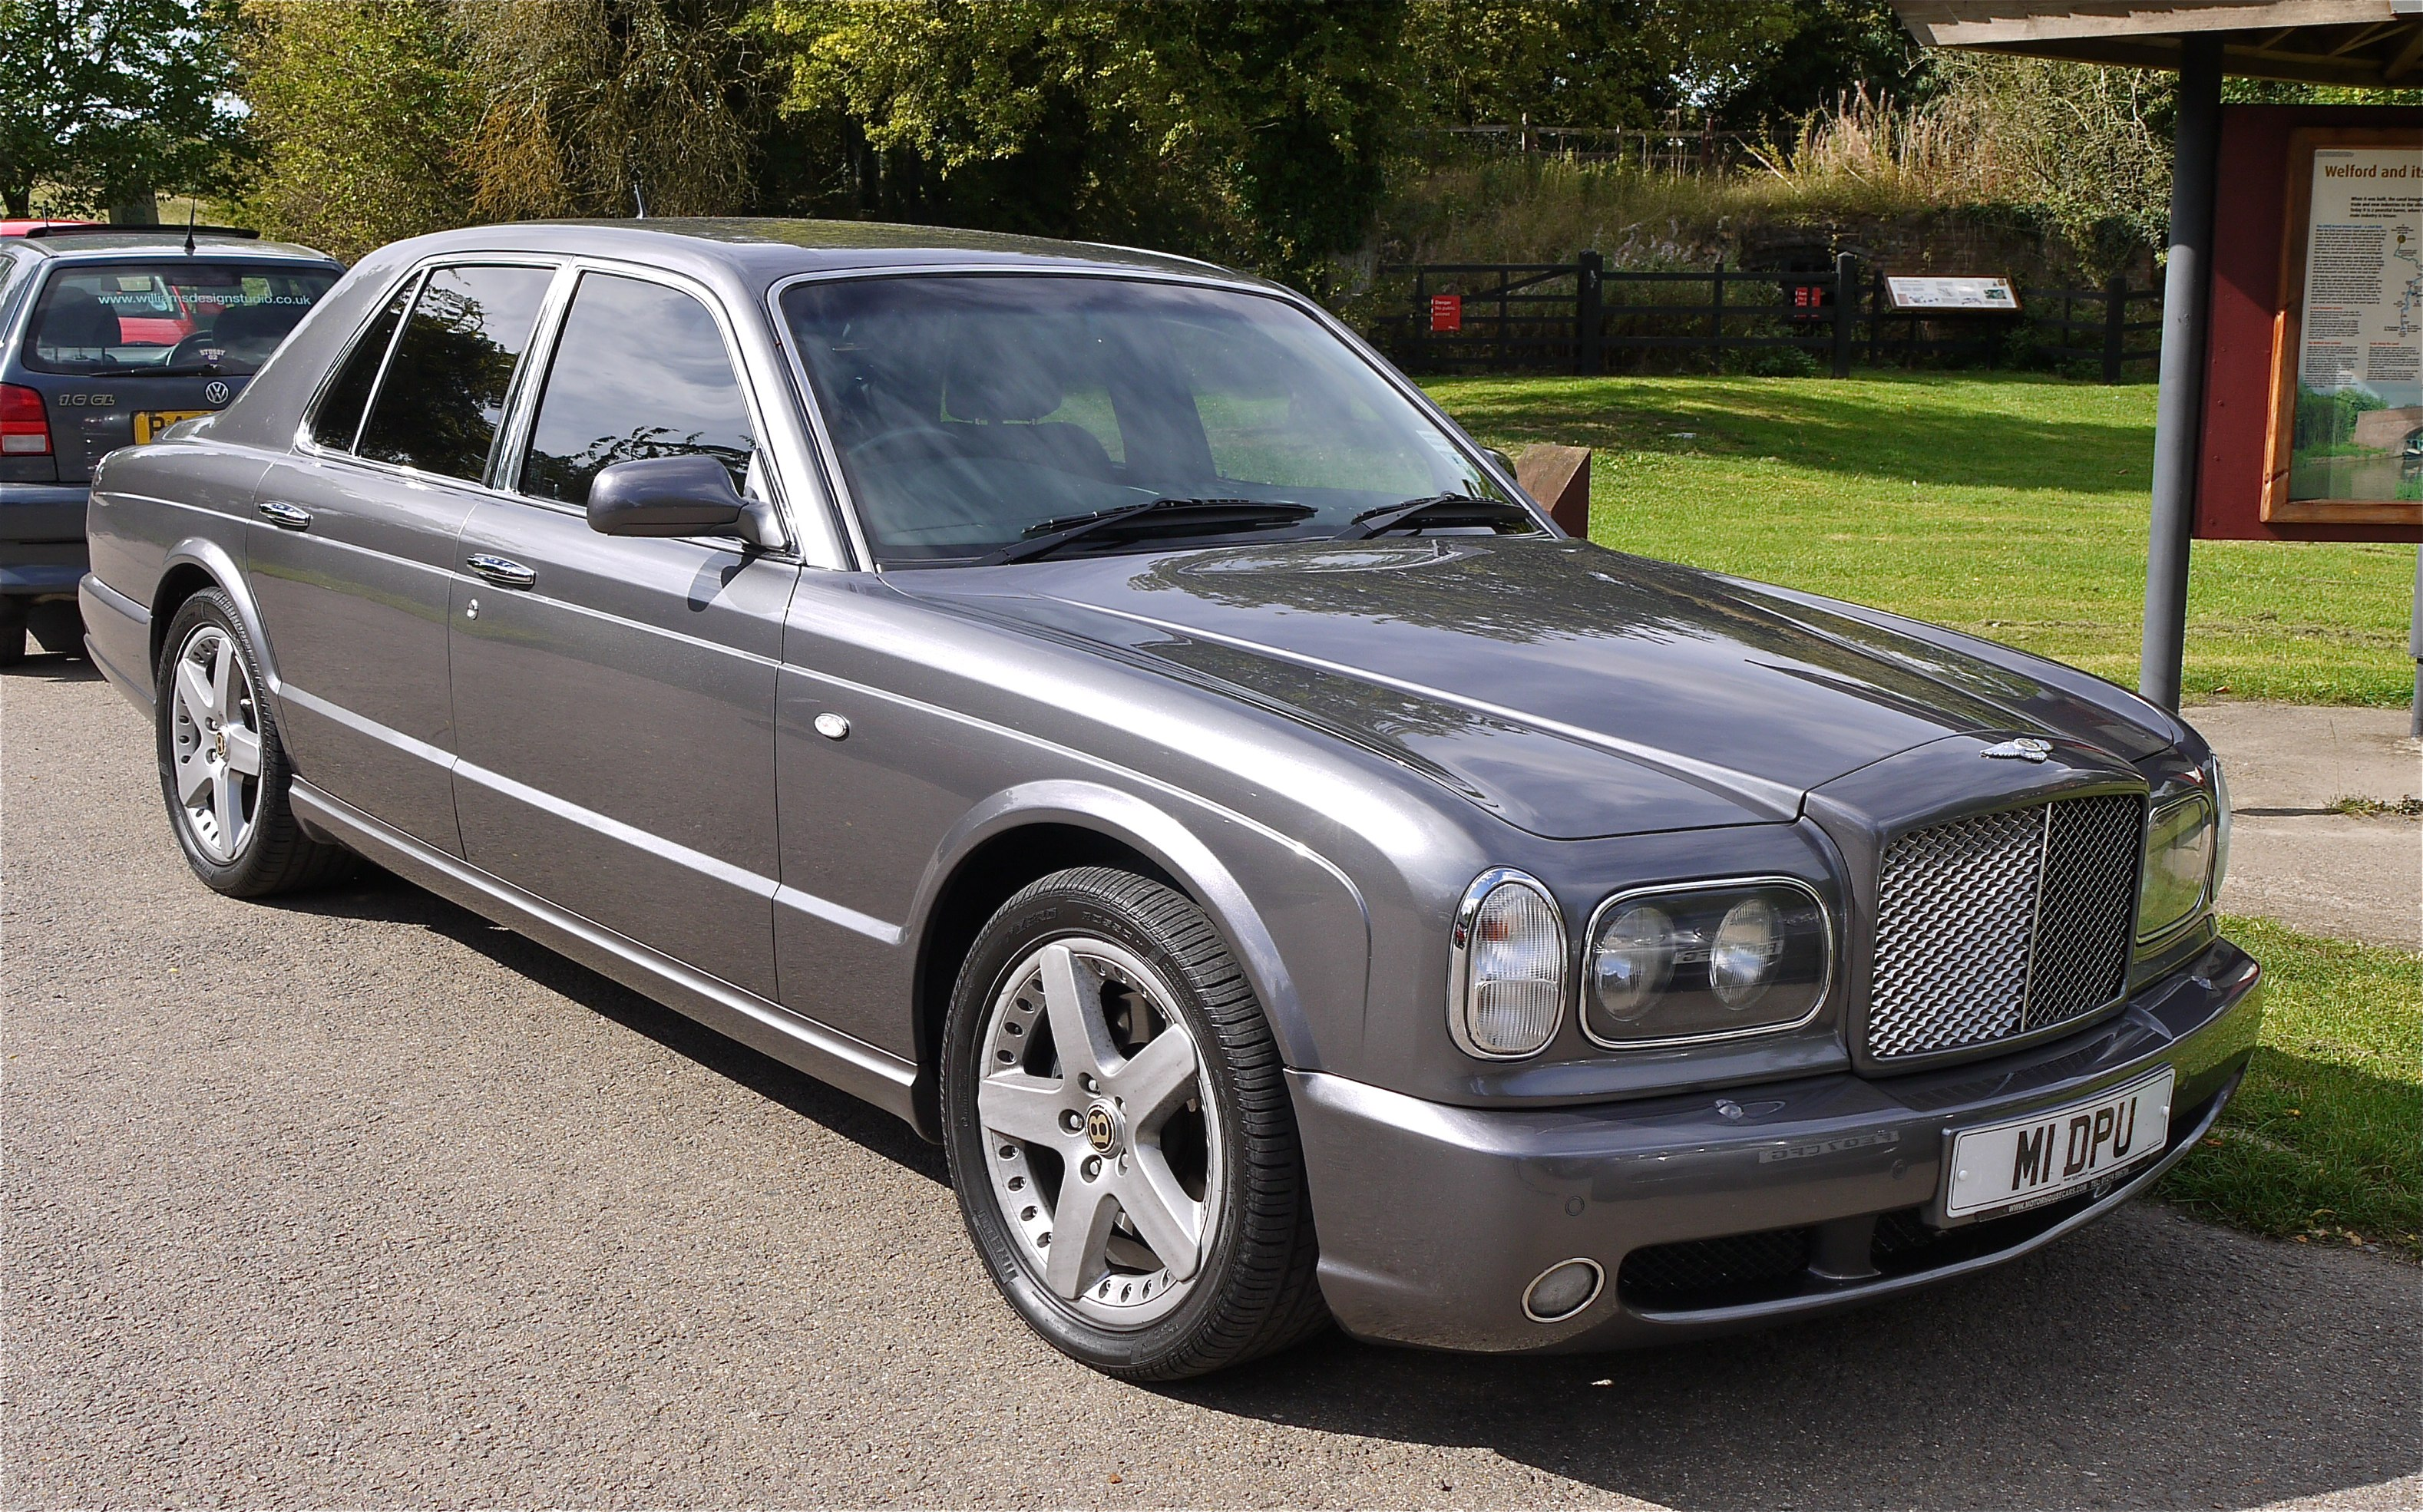 a bentley sold sst from blue imported performance interest future buyers evo bca arnage british always march of classics at news sale us latest japanese and the lot cars about fq nottingham in lancer gsr x mitsubishi attract used for